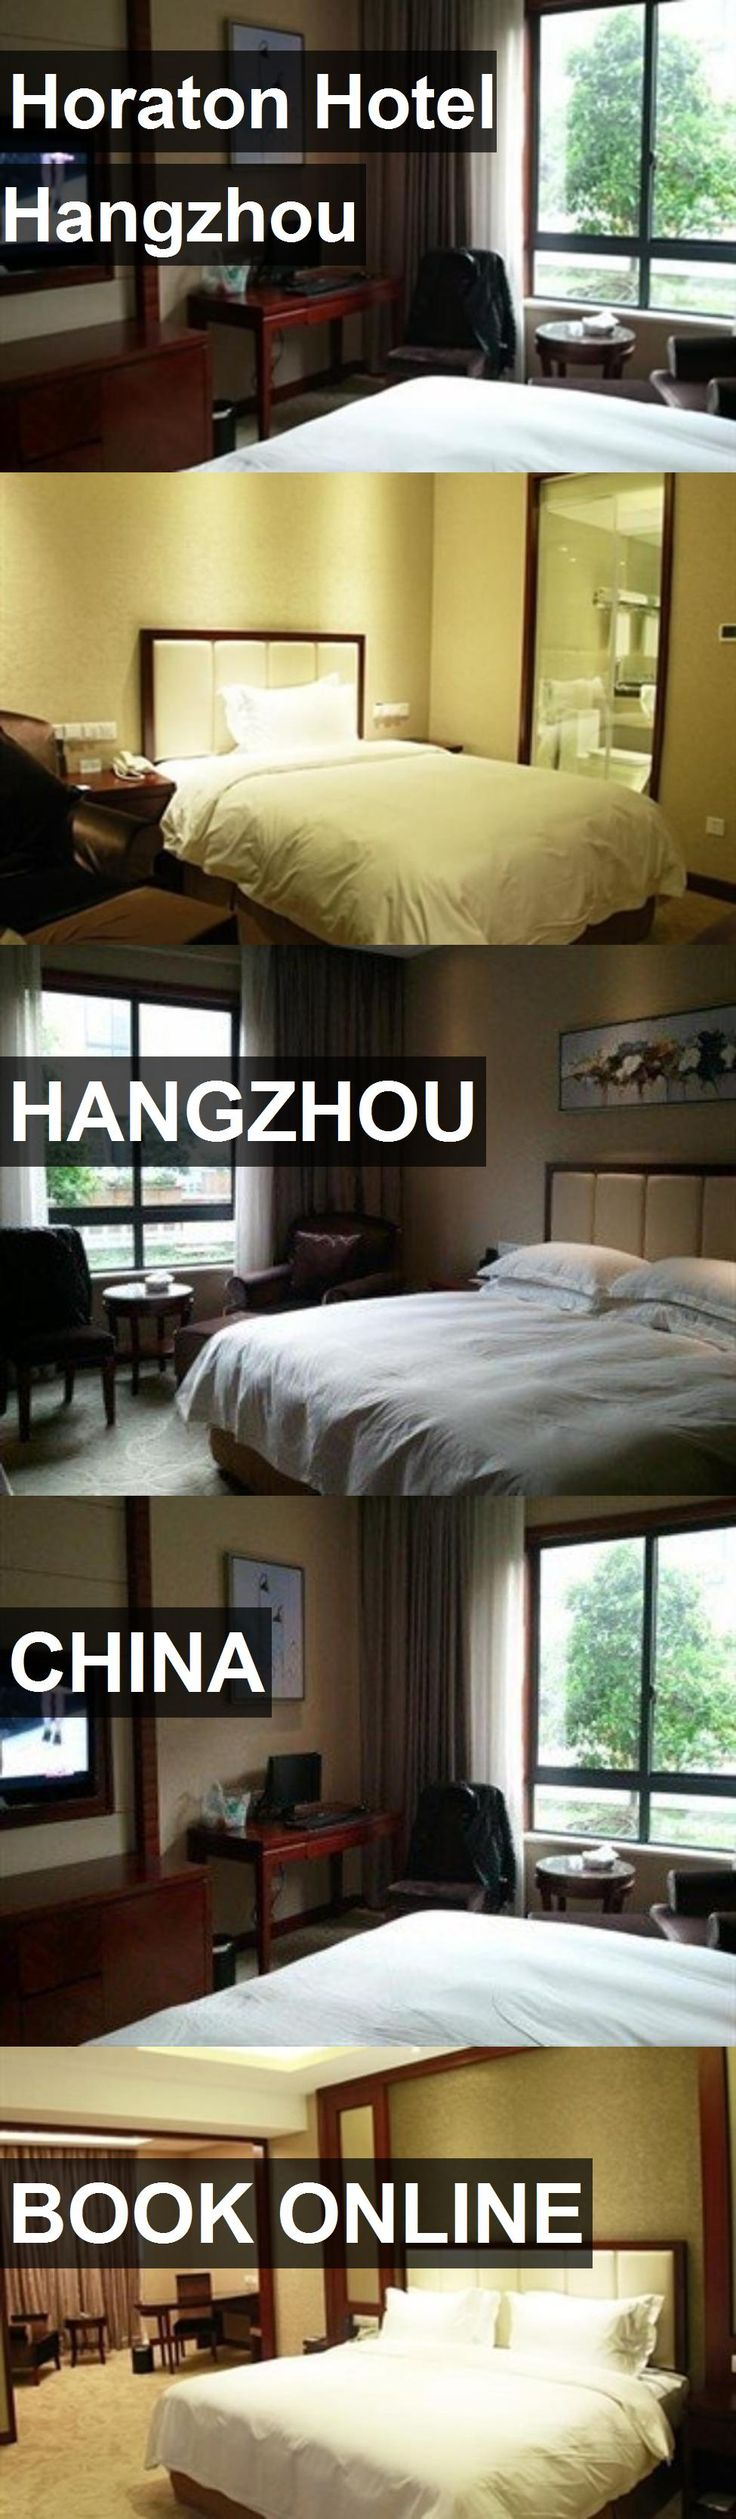 Horaton Hotel Hangzhou in Hangzhou, China. For more information, photos, reviews and best prices please follow the link. #China #Hangzhou #travel #vacation #hotel